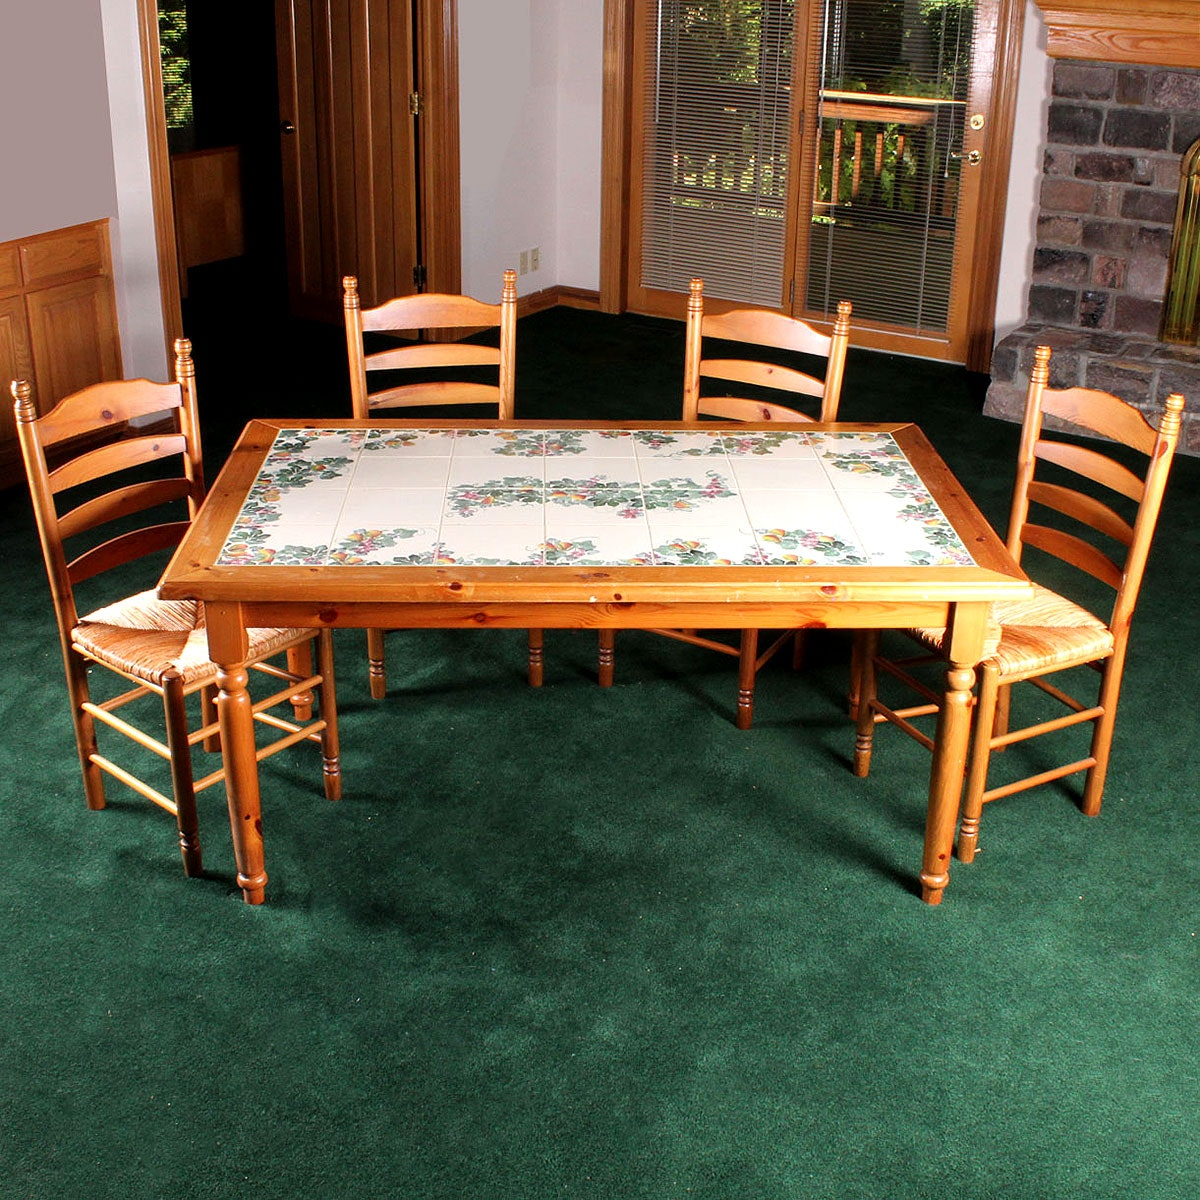 Nicola Fasano Grottaglie Tile Top Table And Chairs ...